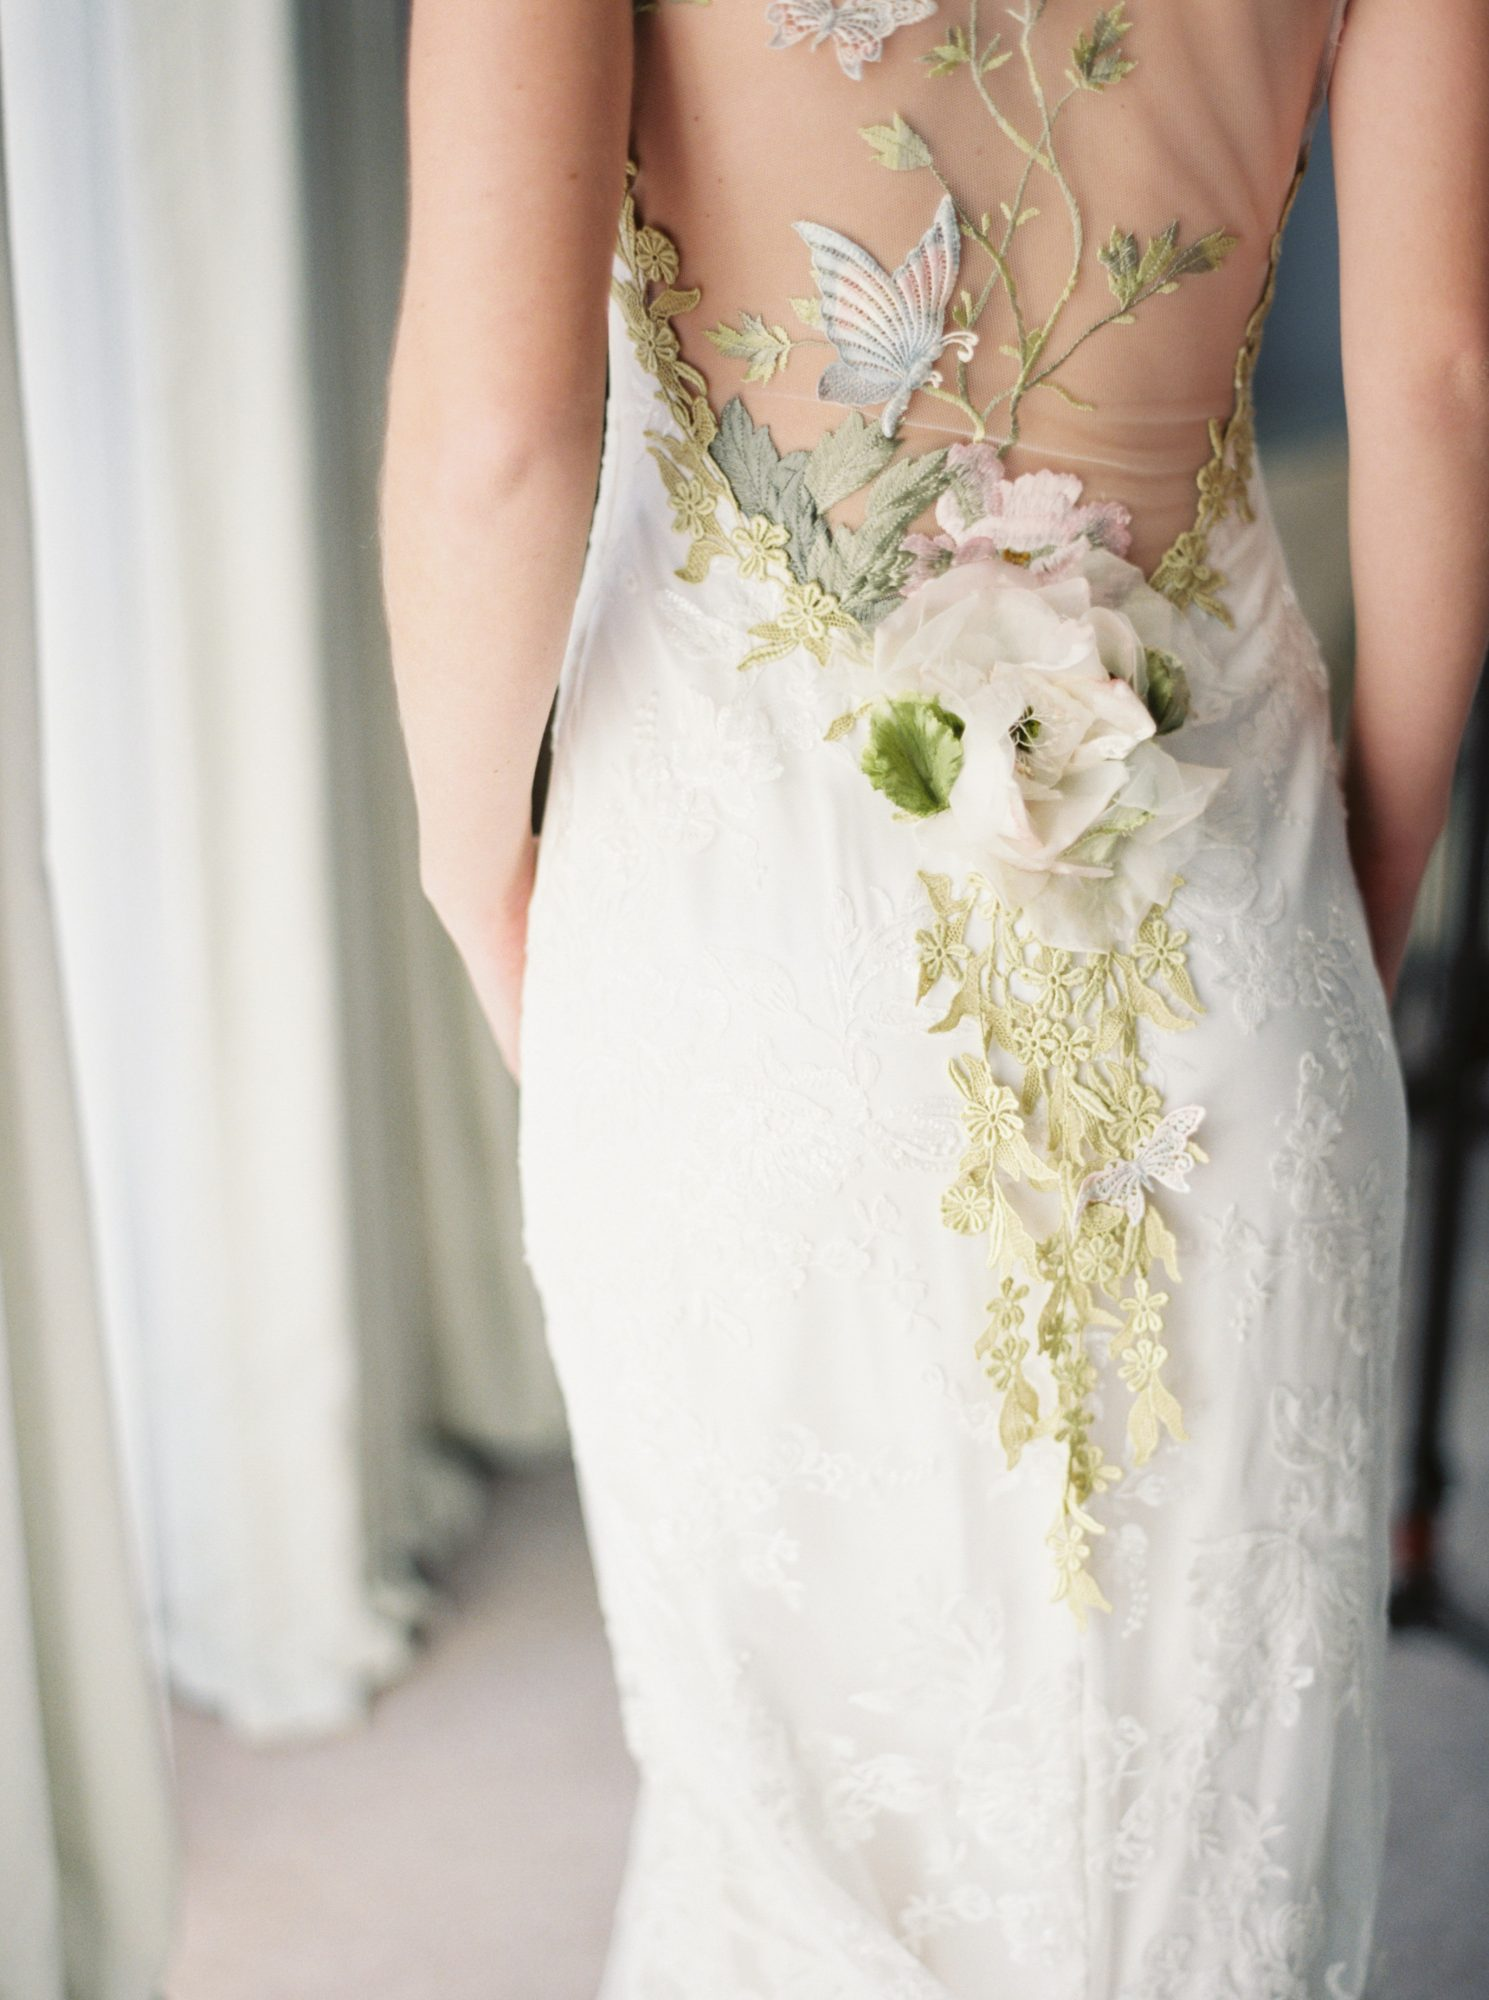 white wedding dress with colorful pastel accents